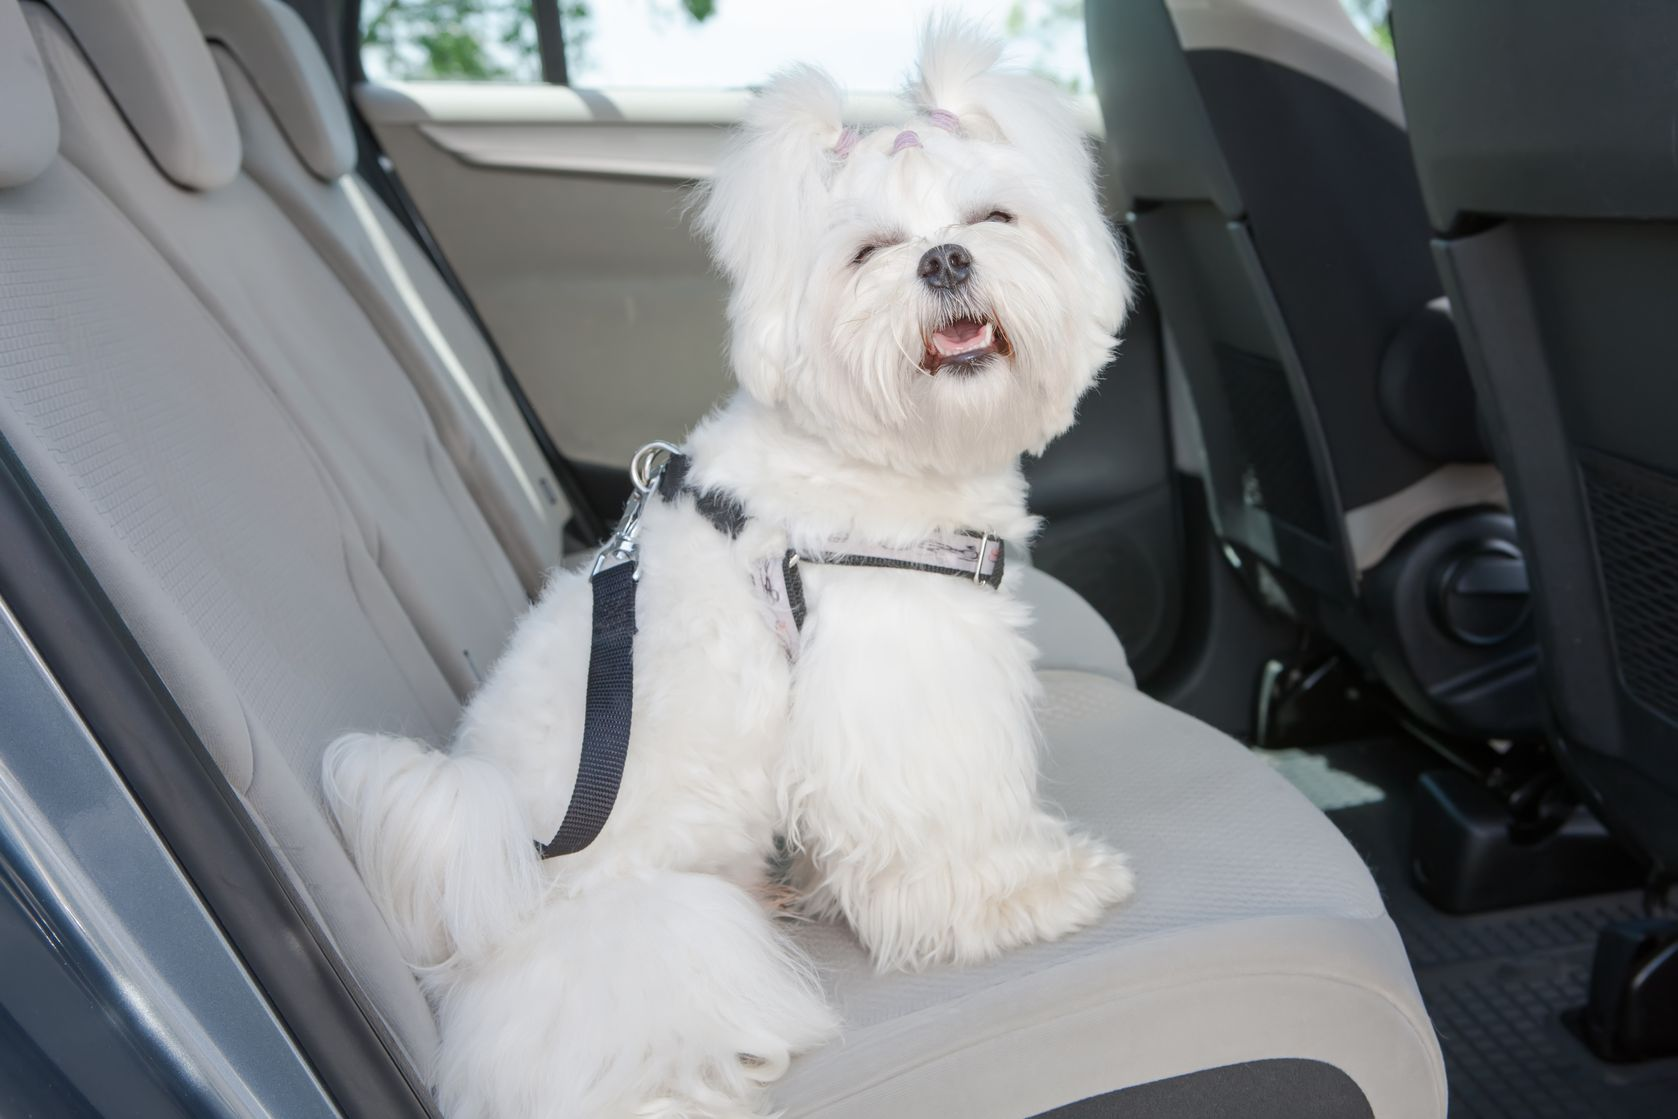 Dog-in-car-using-harness-safety